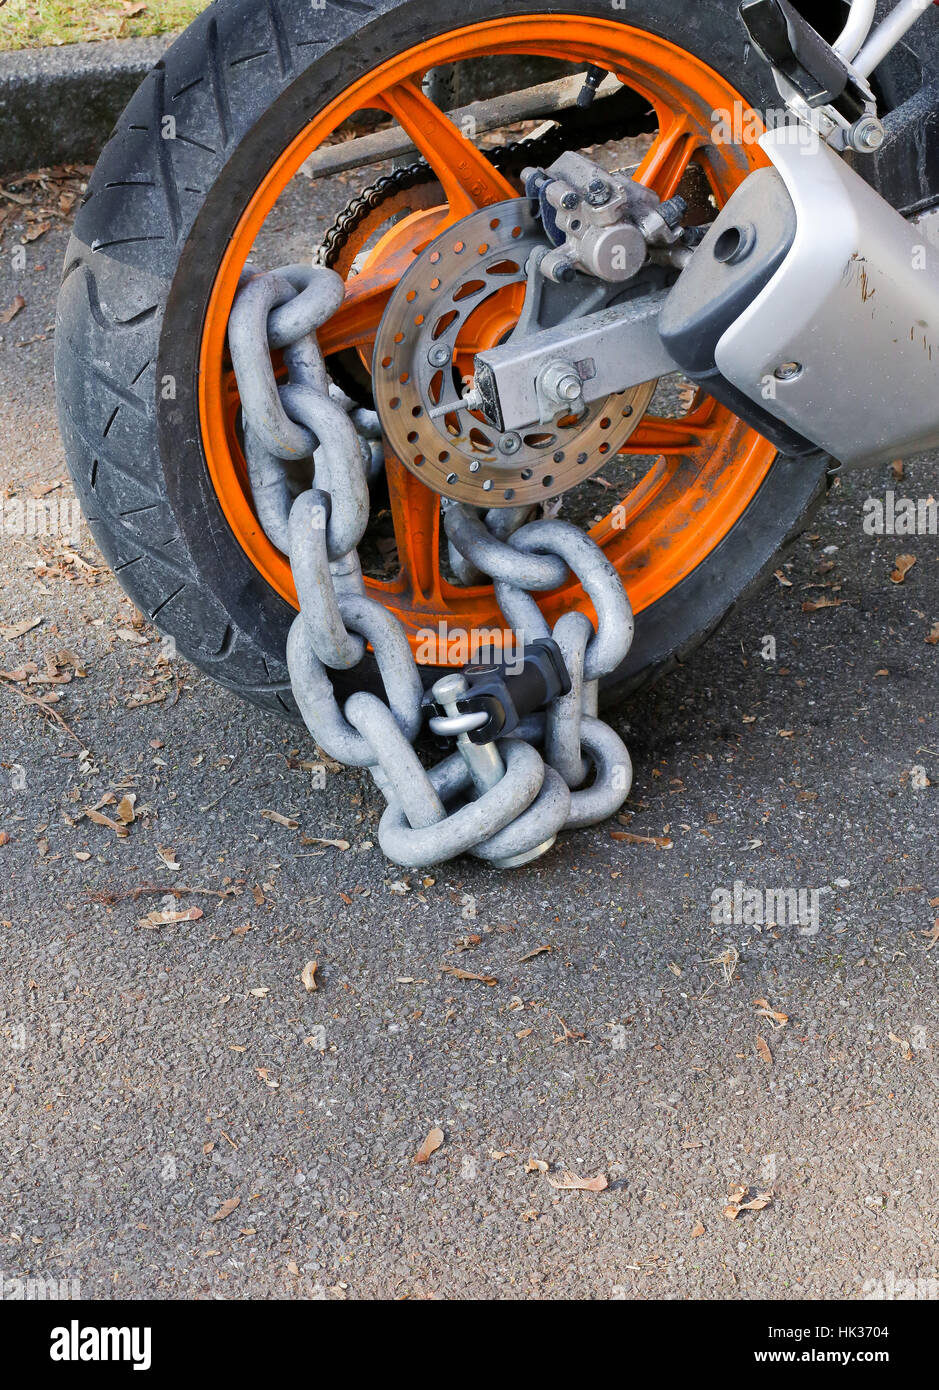 Motorcycle anti-theft chain with padlock security lock on rear wheel, protection against theft - Stock Image